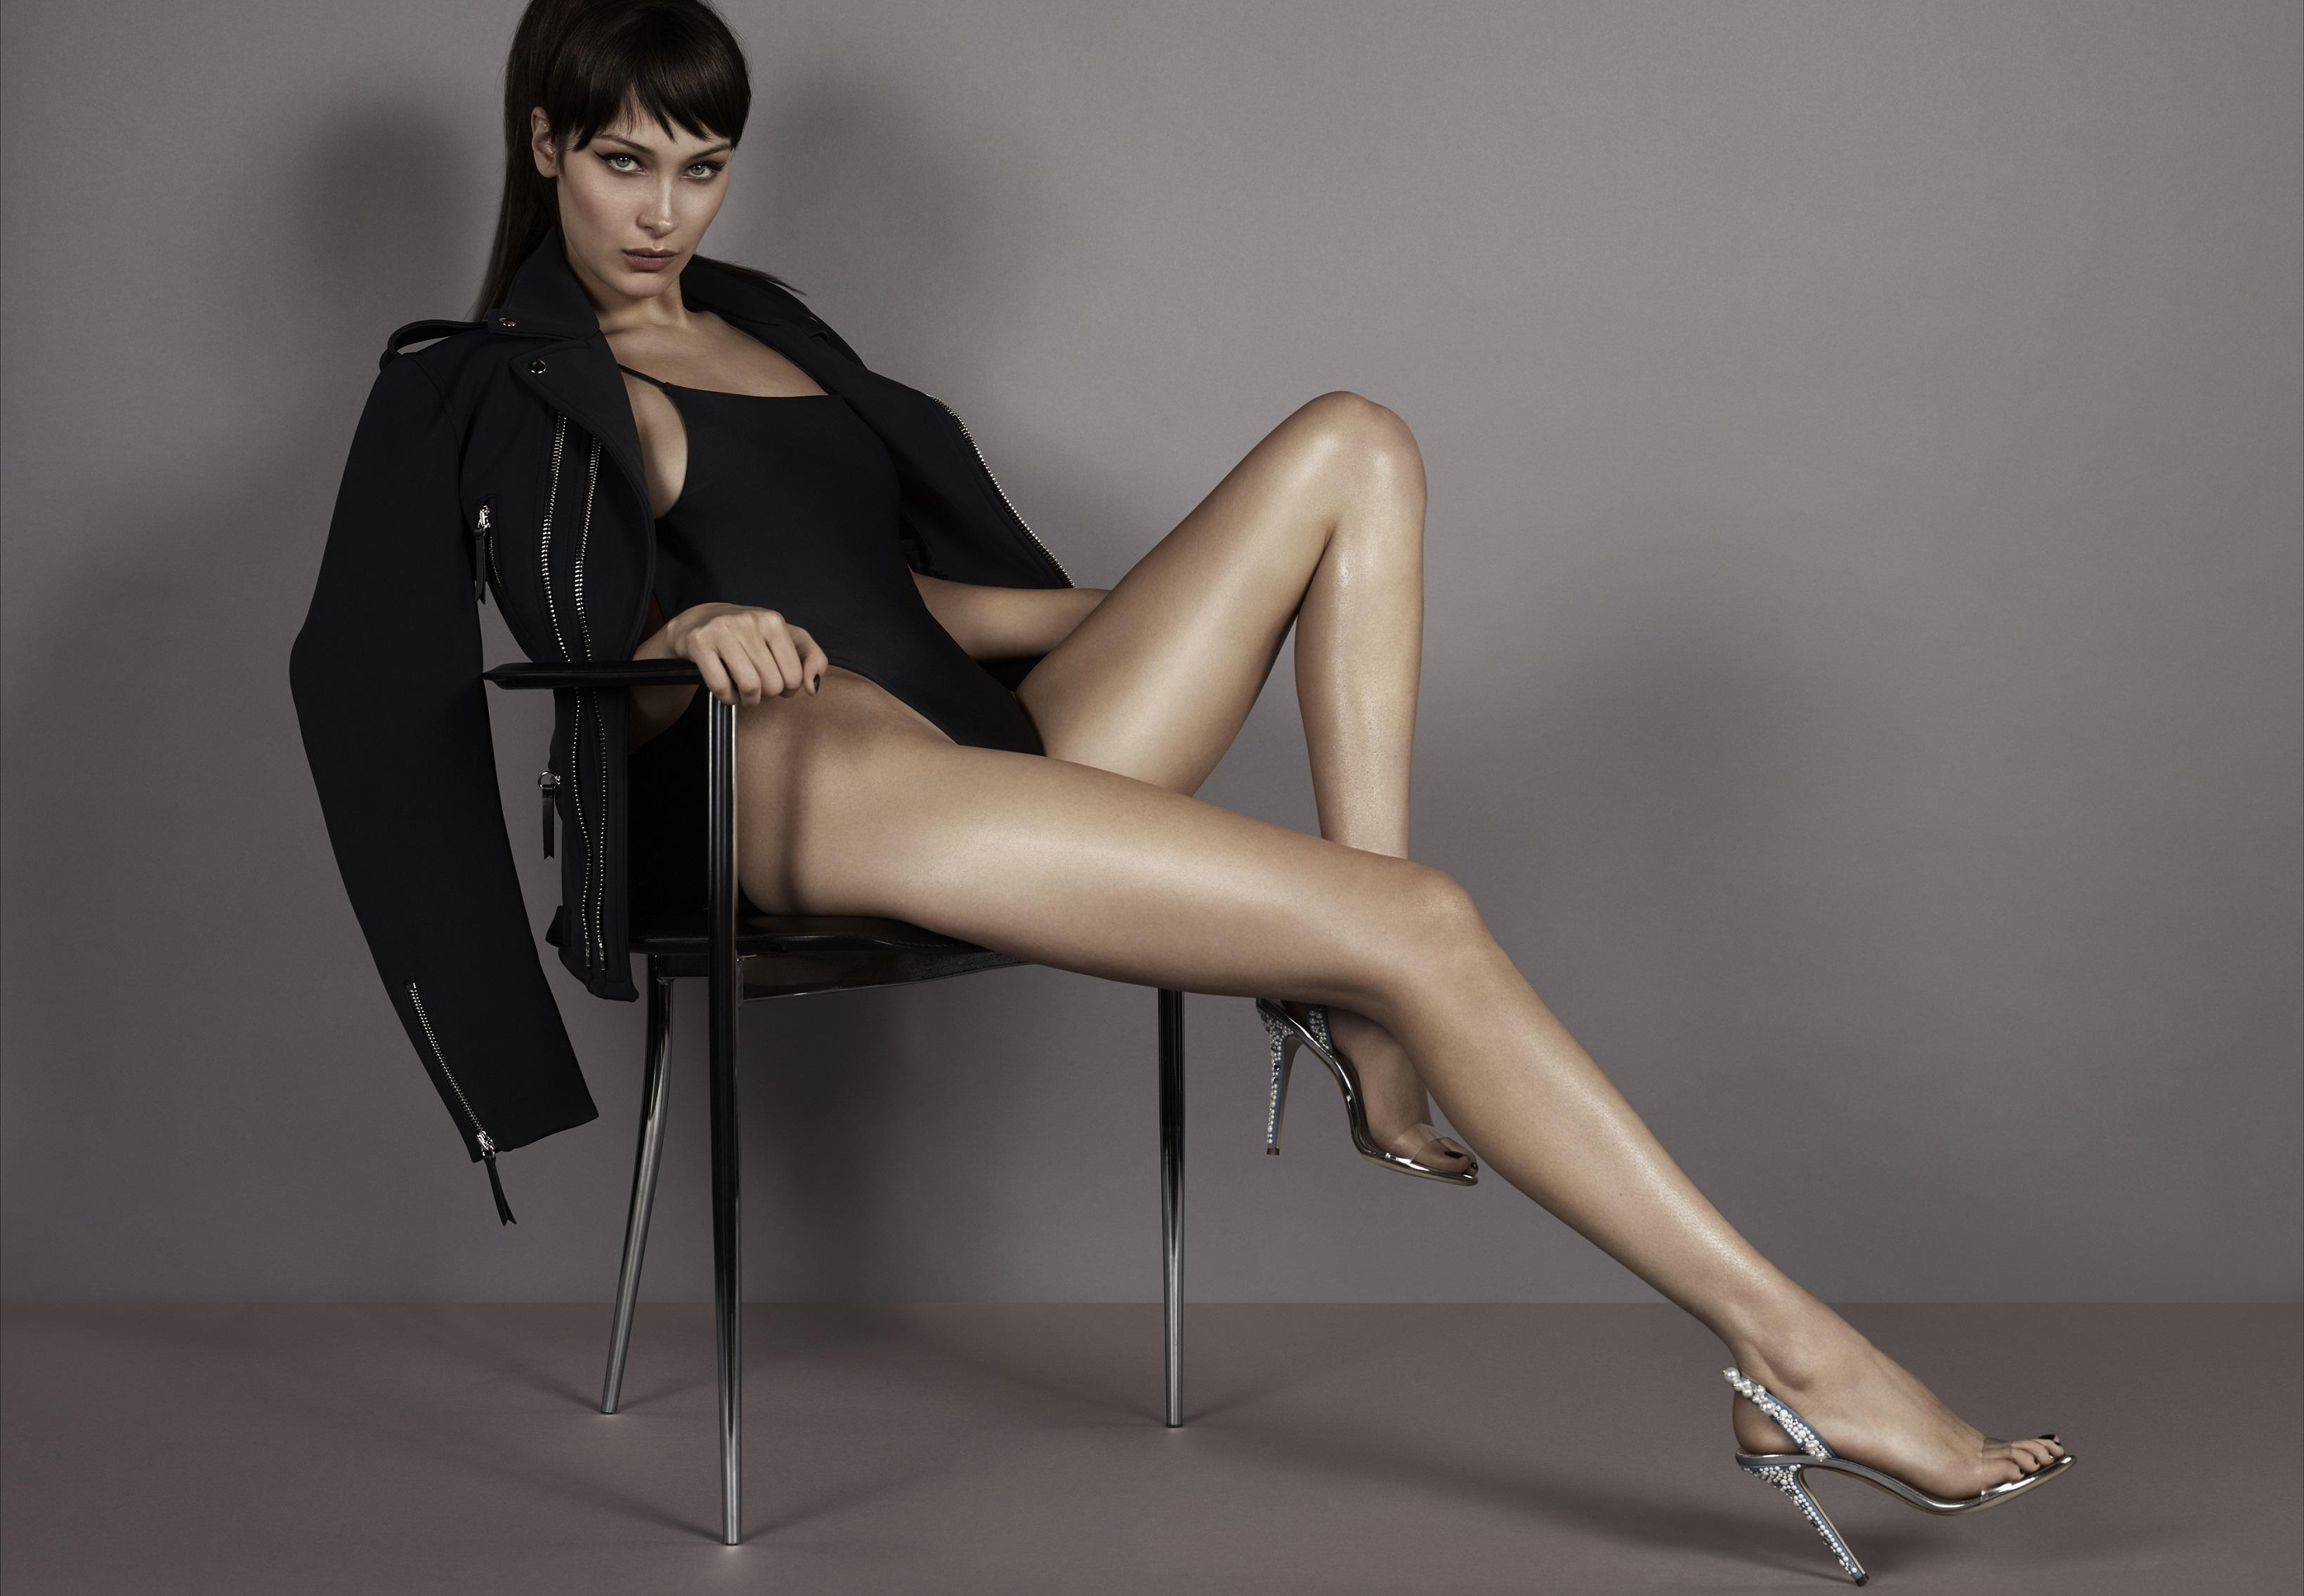 Legs for Days! Bella Hadid Sizzles in New Giuseppe Zanotti ...